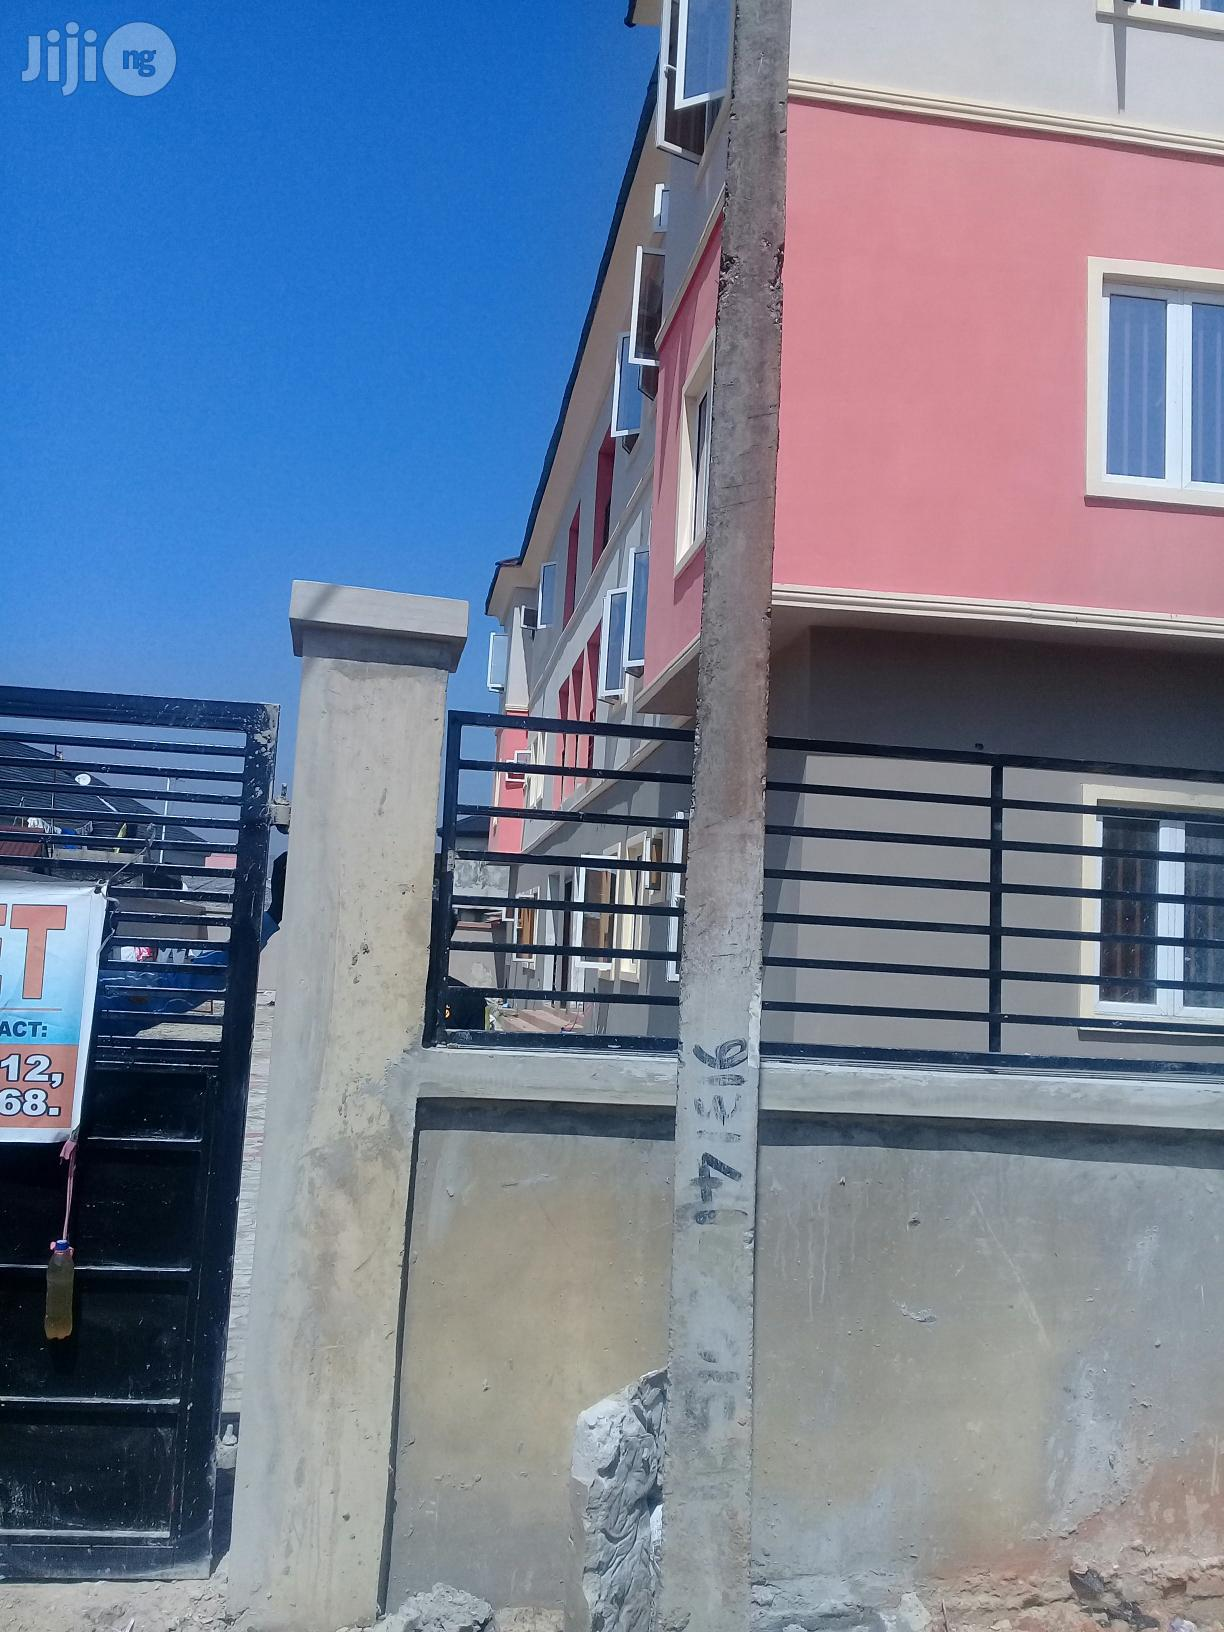 3 Bedroom Flat For Rent At Greenville Estate Badore Ajah | Houses & Apartments For Rent for sale in Ajah, Lagos State, Nigeria